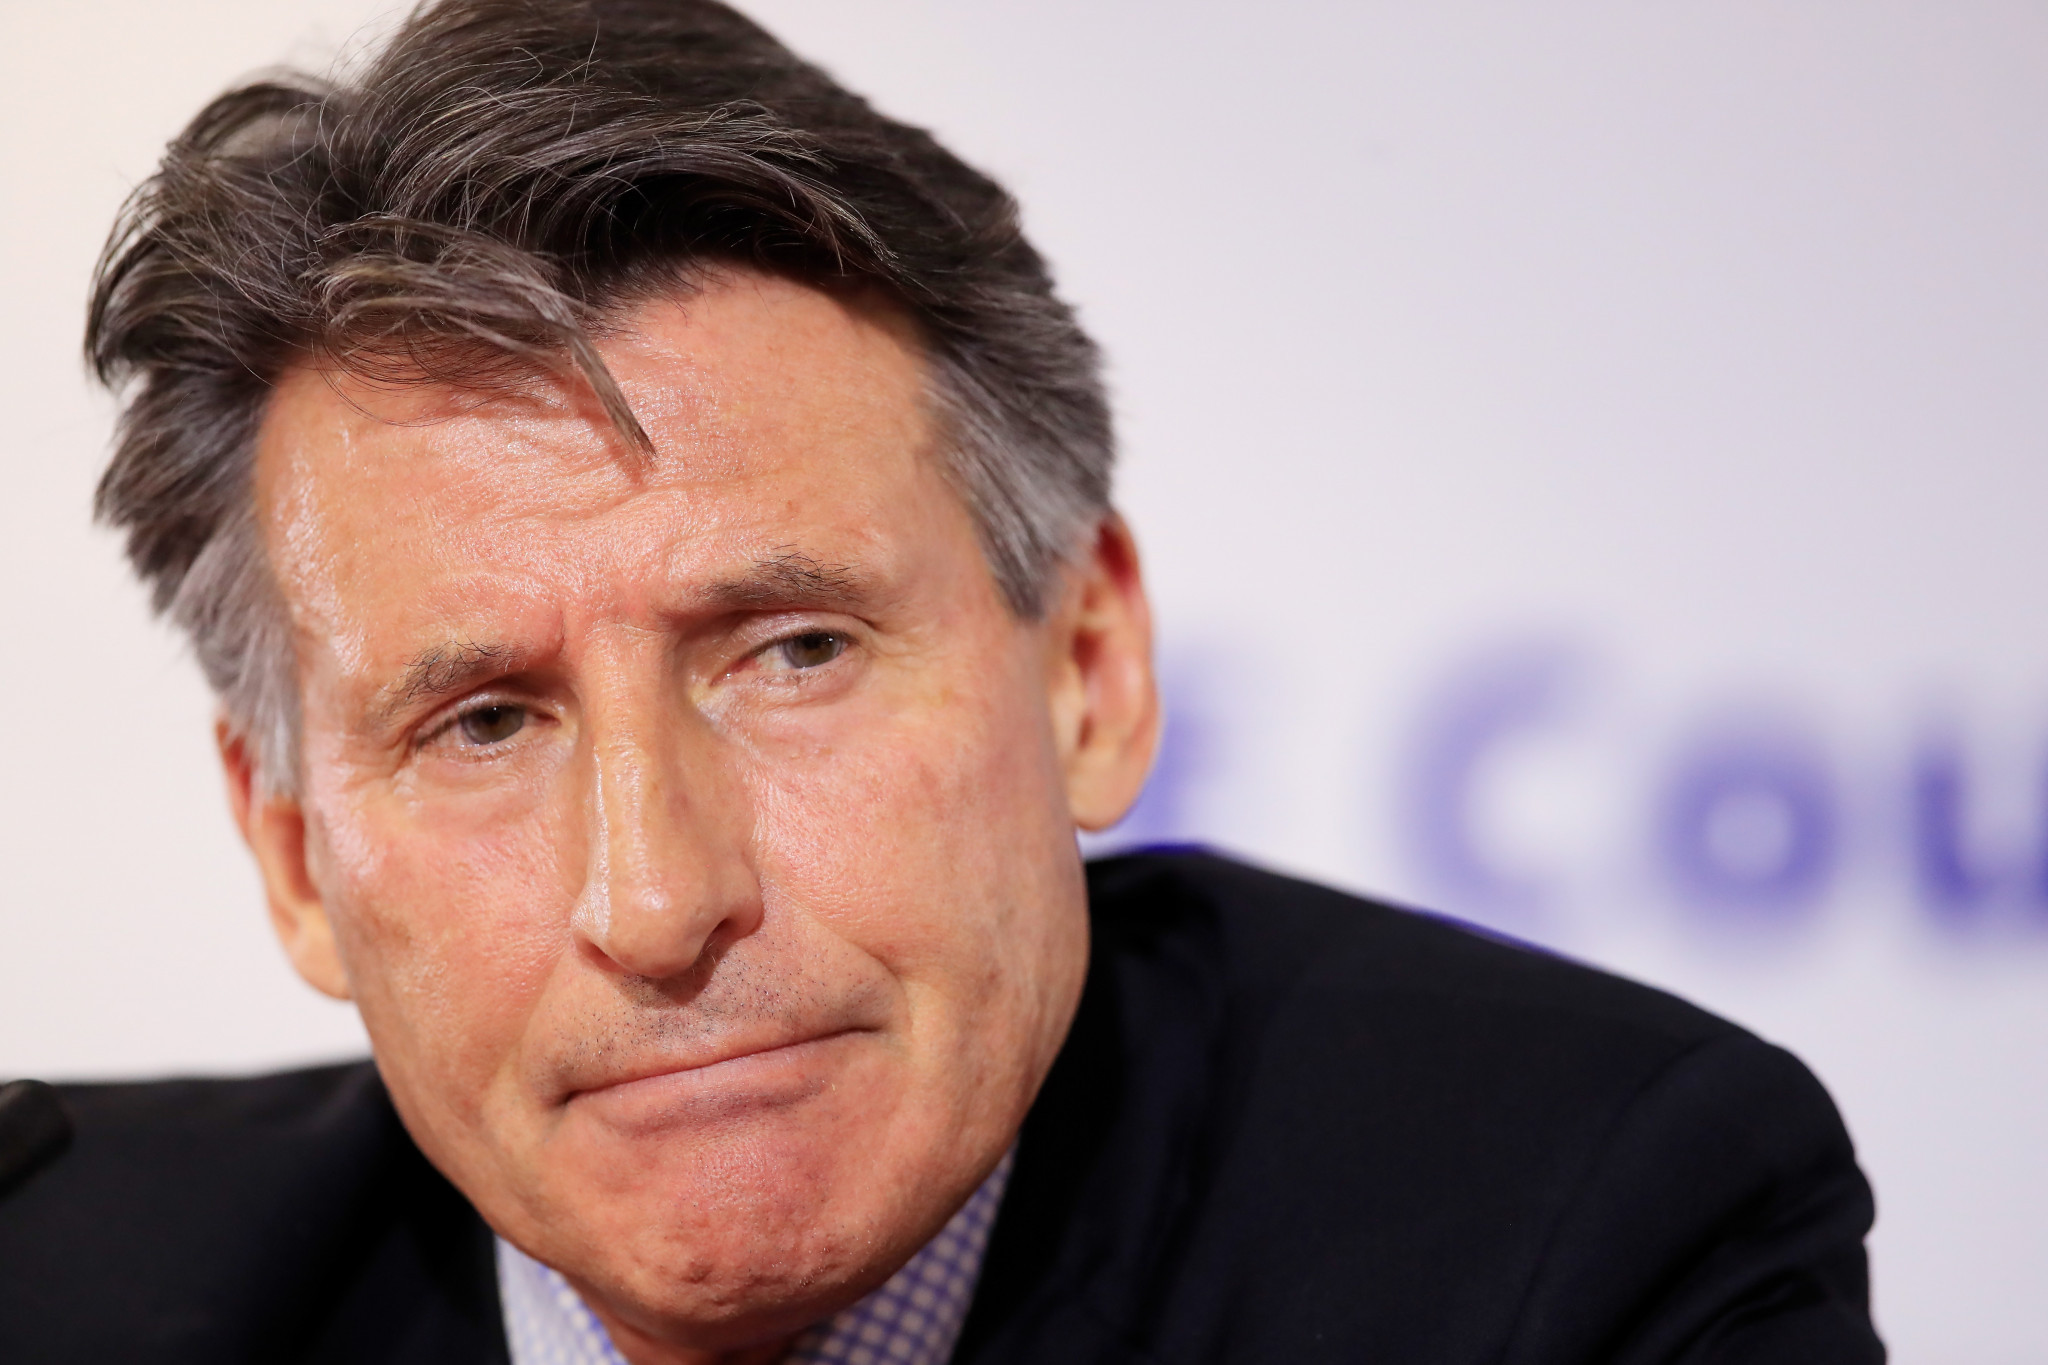 World Athletics President Coe warns suspended Coleman he will not receive special treatment ahead of Tokyo 2020